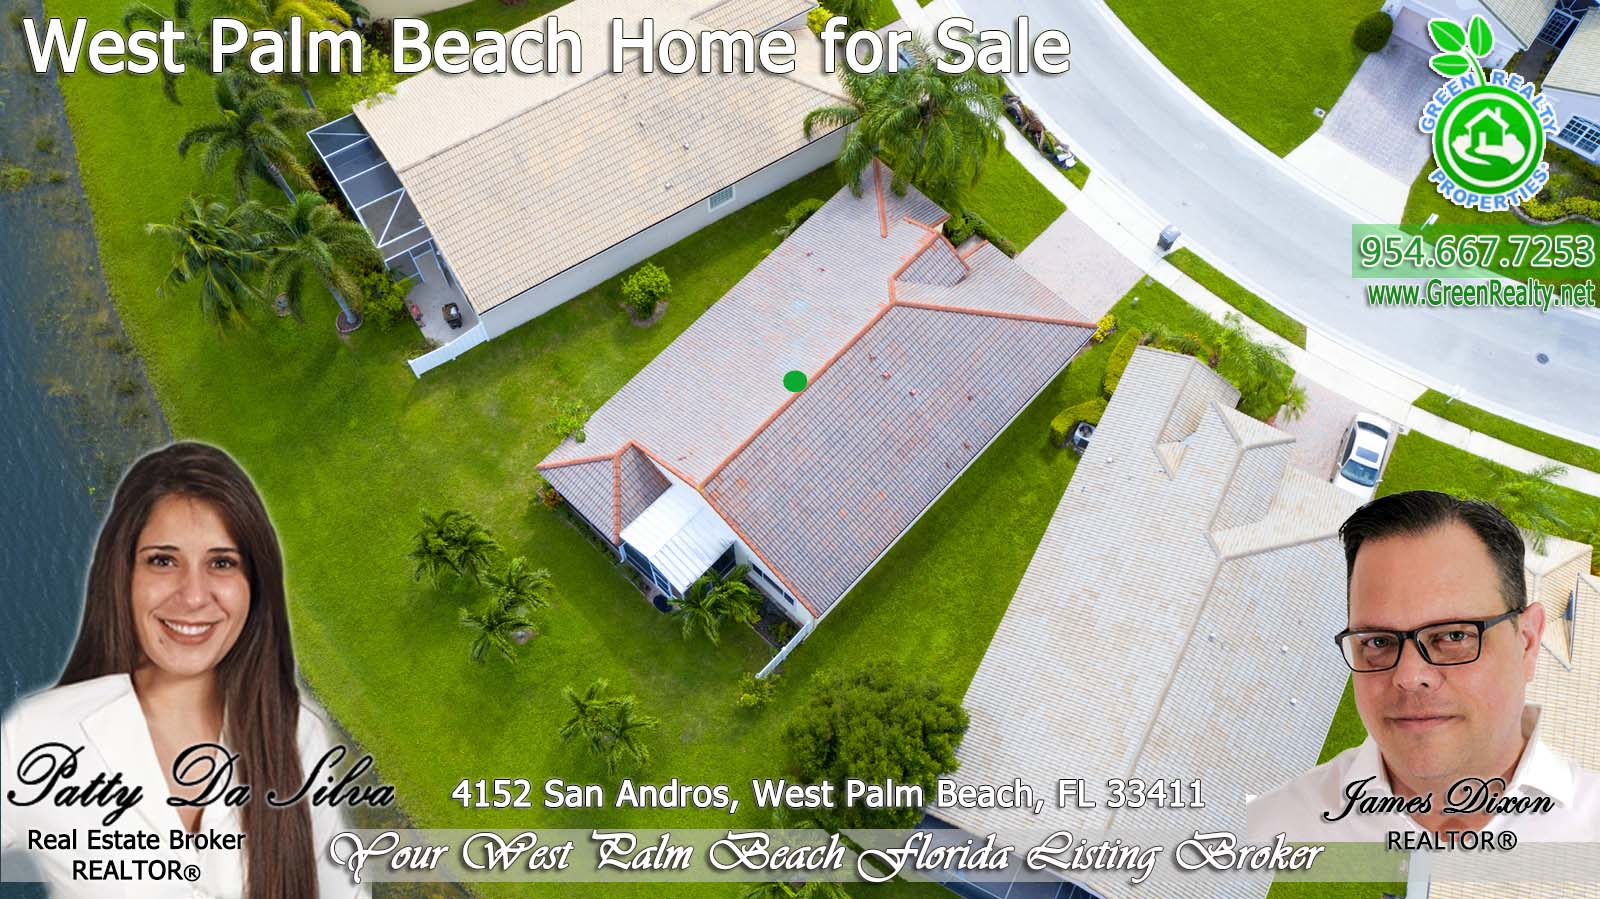 West Palm Beach Homes For Sale - 4152 San Andros Aerial Photos (7)